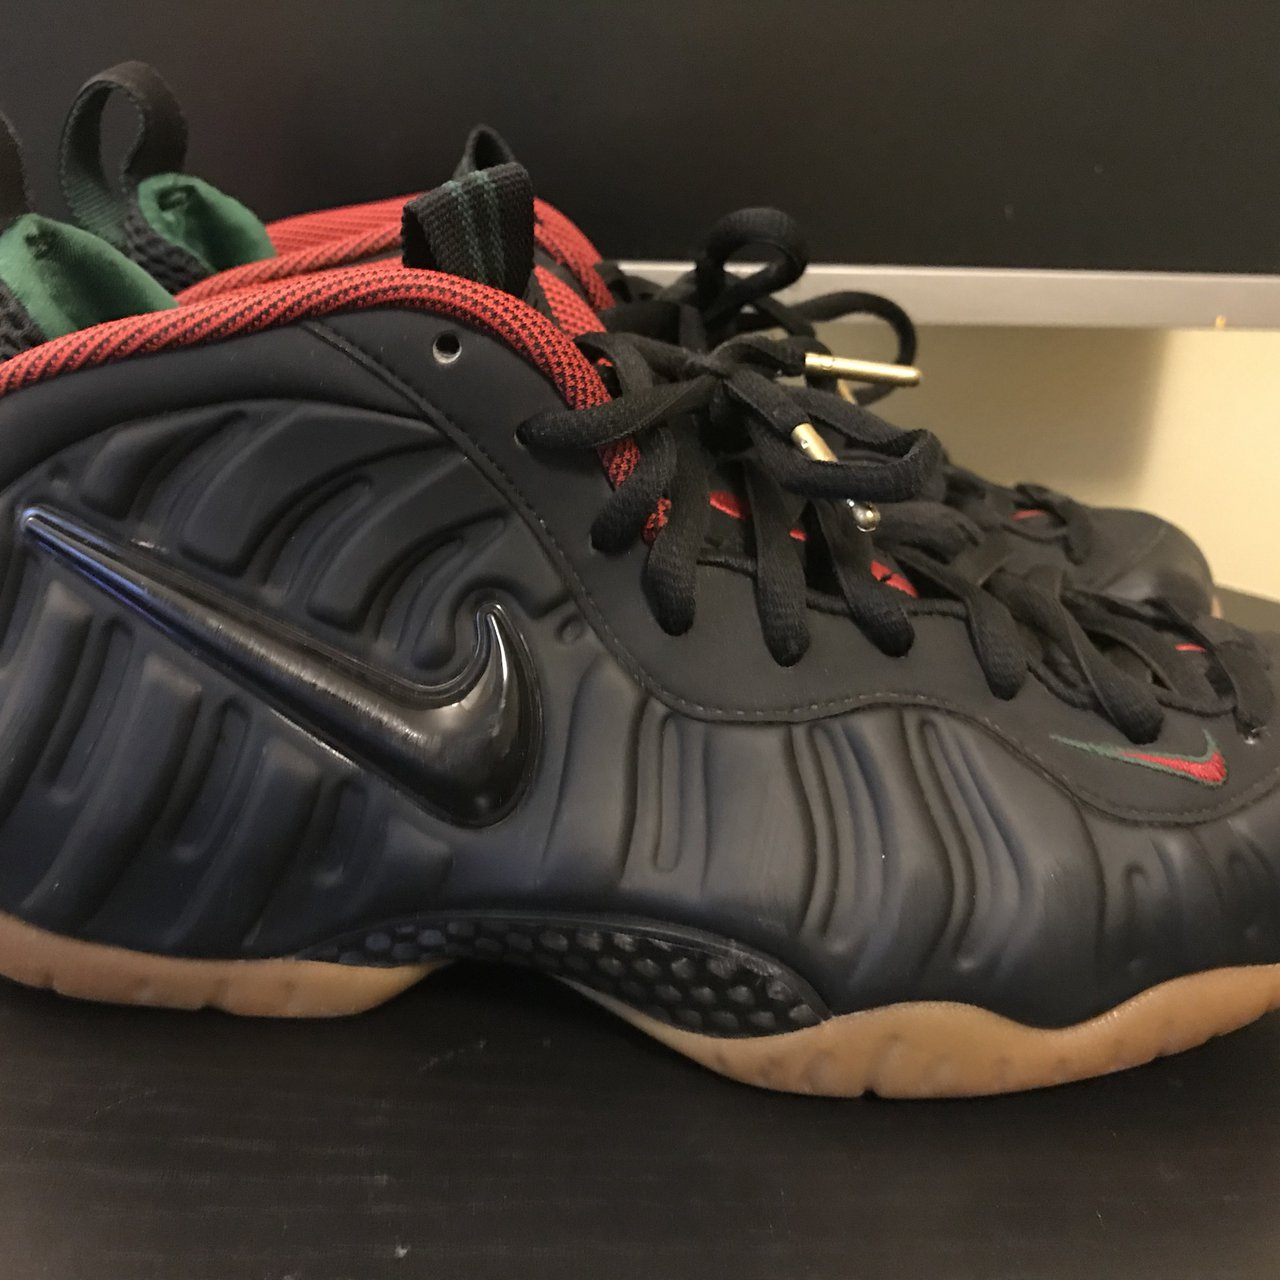 fa934ff2054c5 Gucci nike foamposite worn as seen in pics gucci nike depop jpg 1280x1280 Nike  foamposite gucci